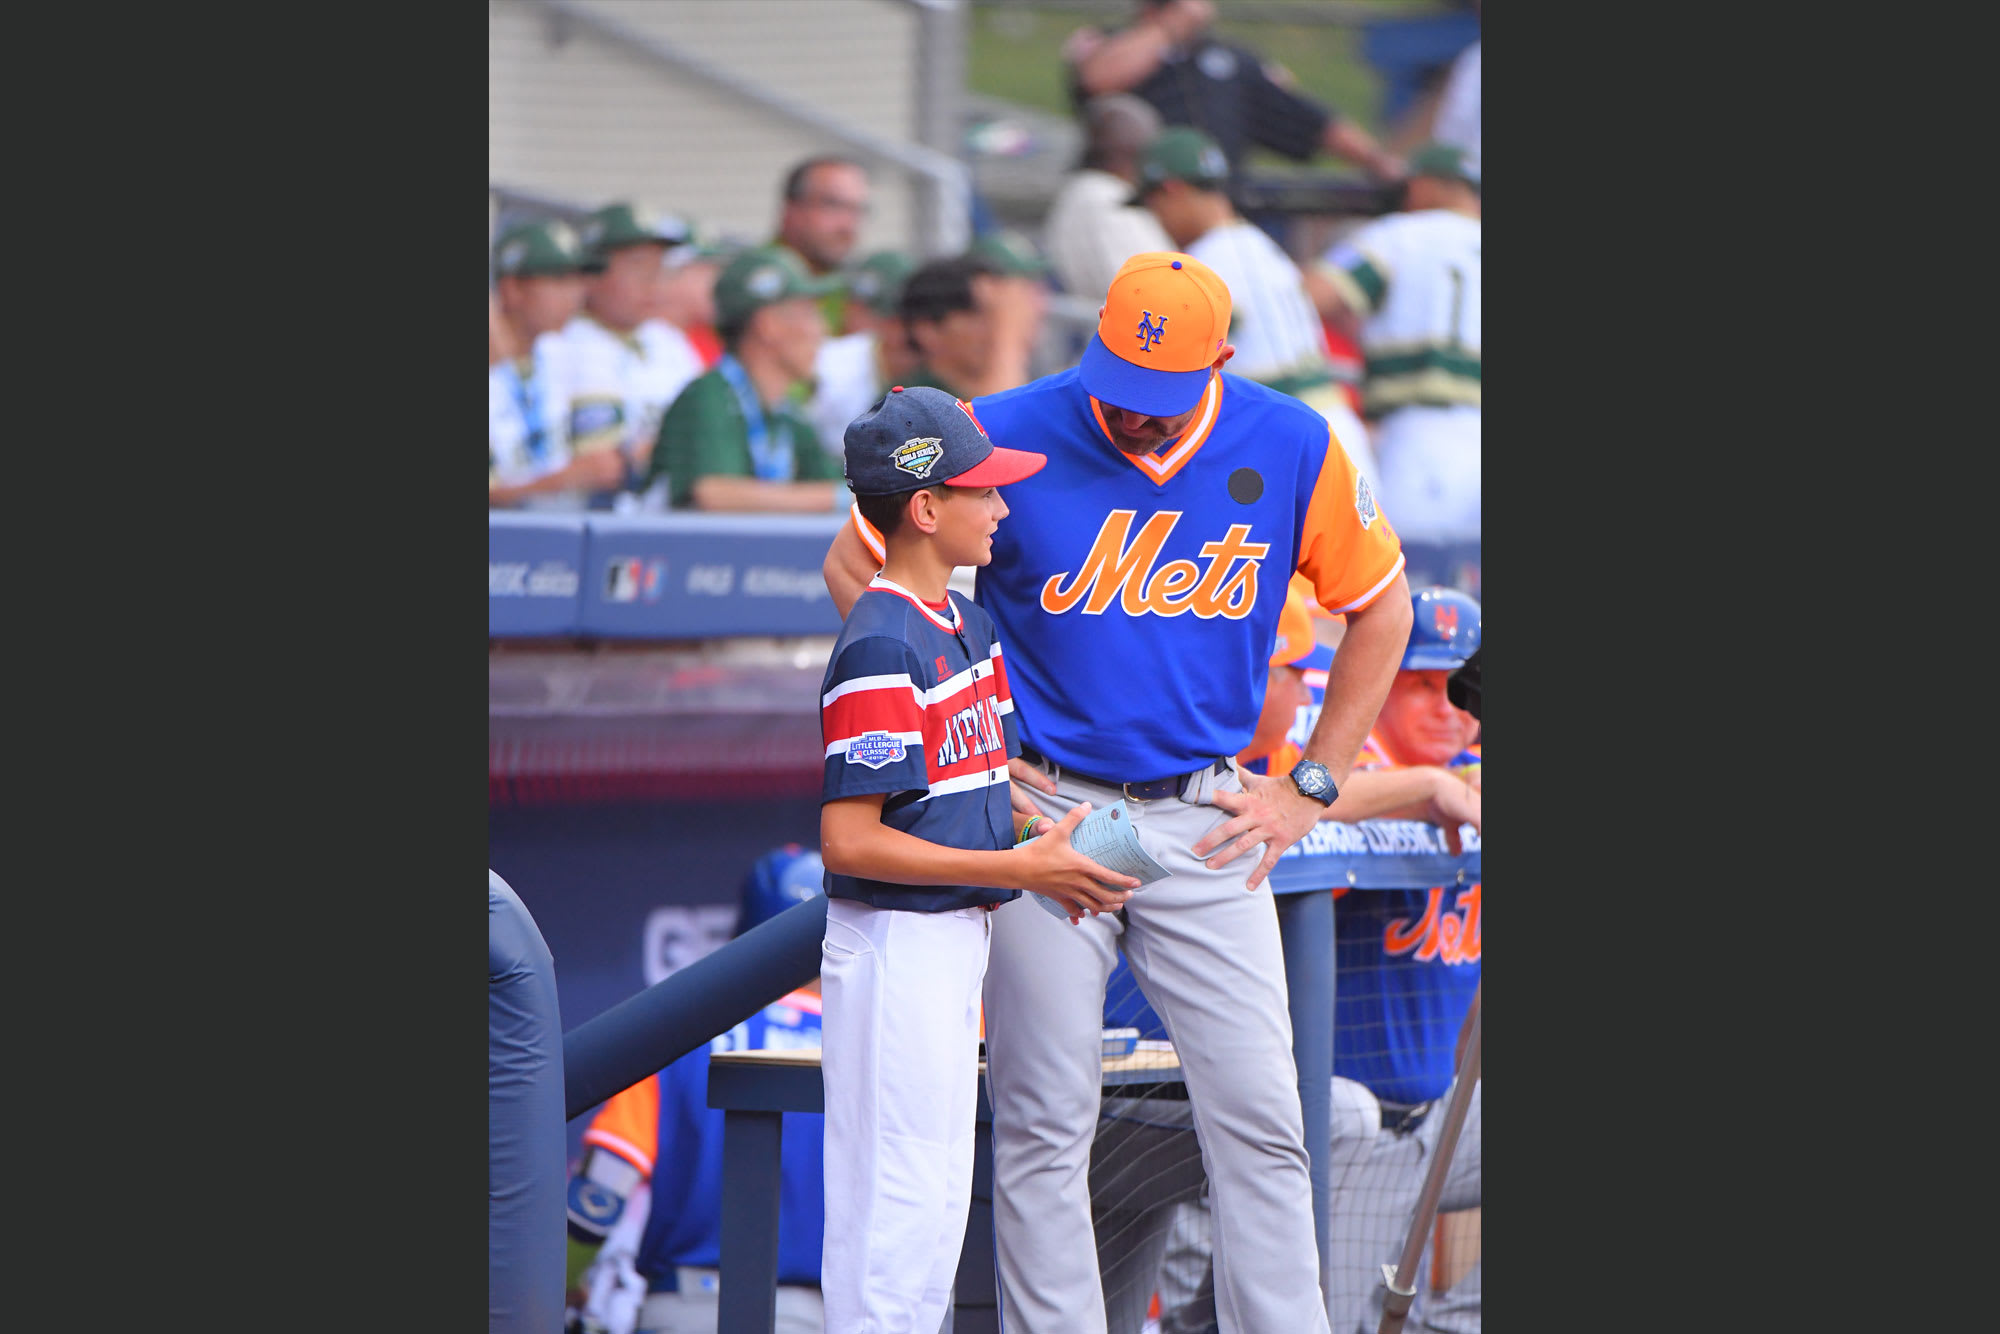 mets player talking to ll player